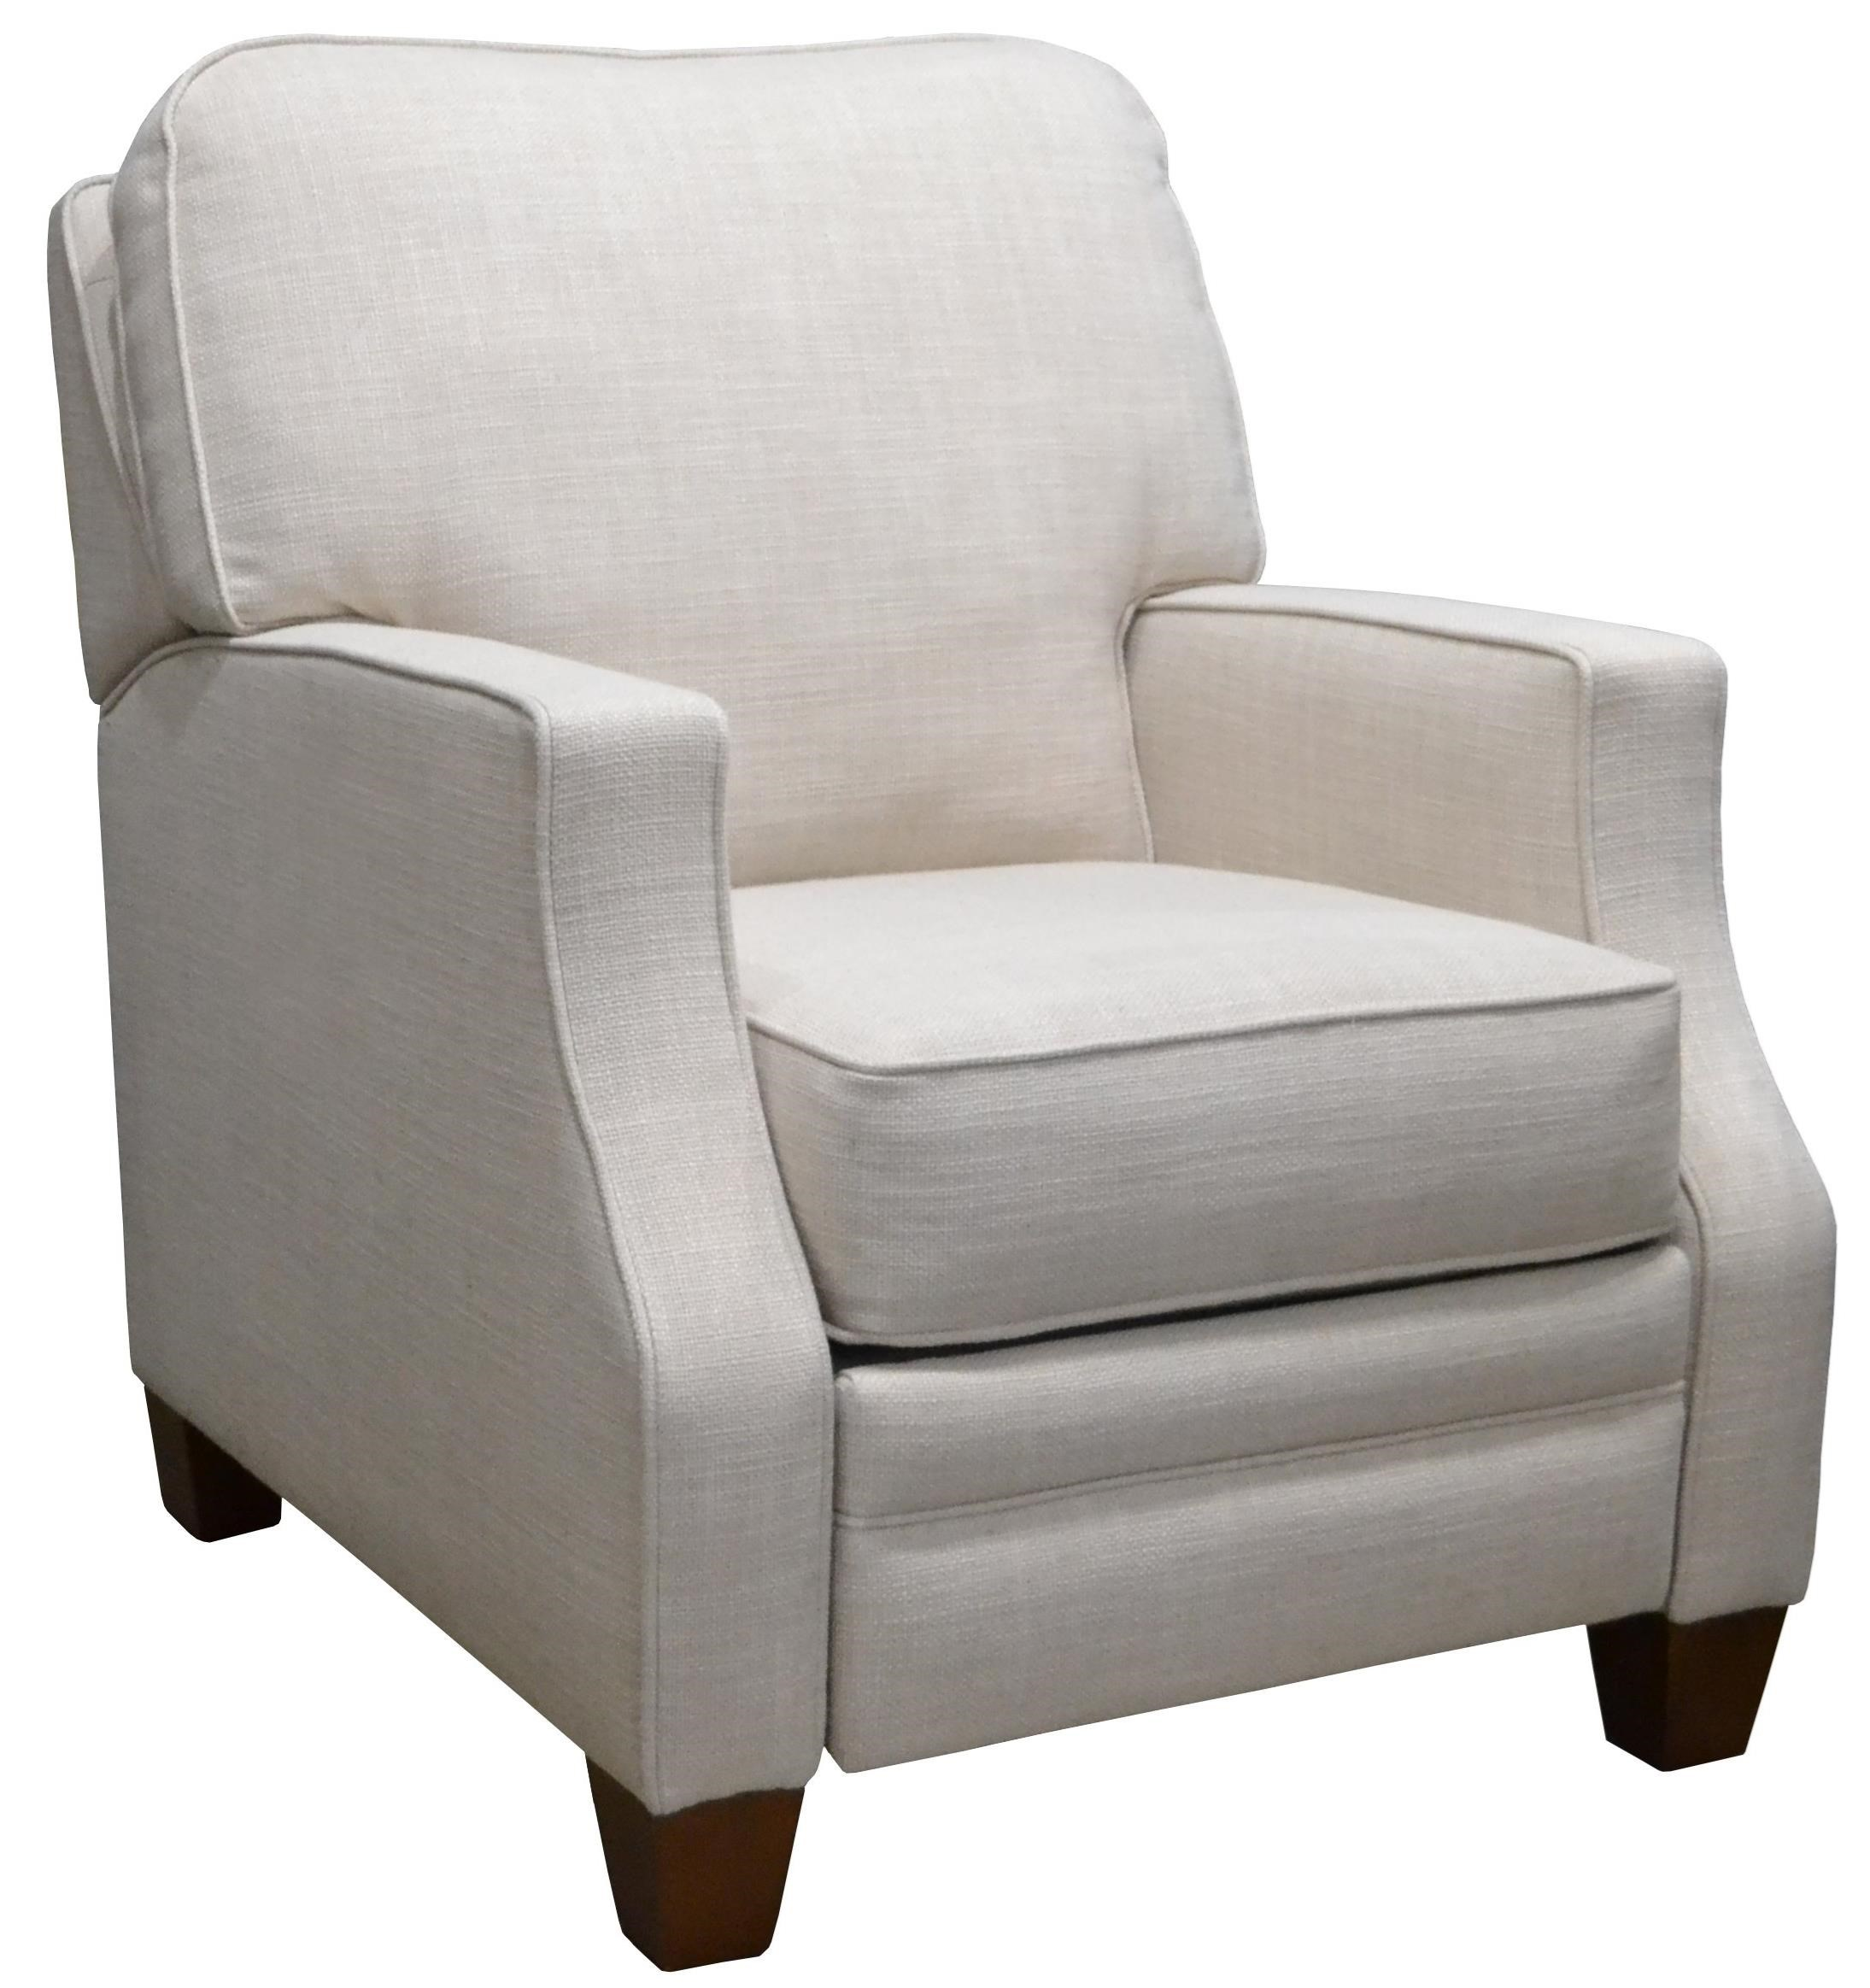 High Leg Recliners | Eugene, Springfield, Albany, Coos Bay ...